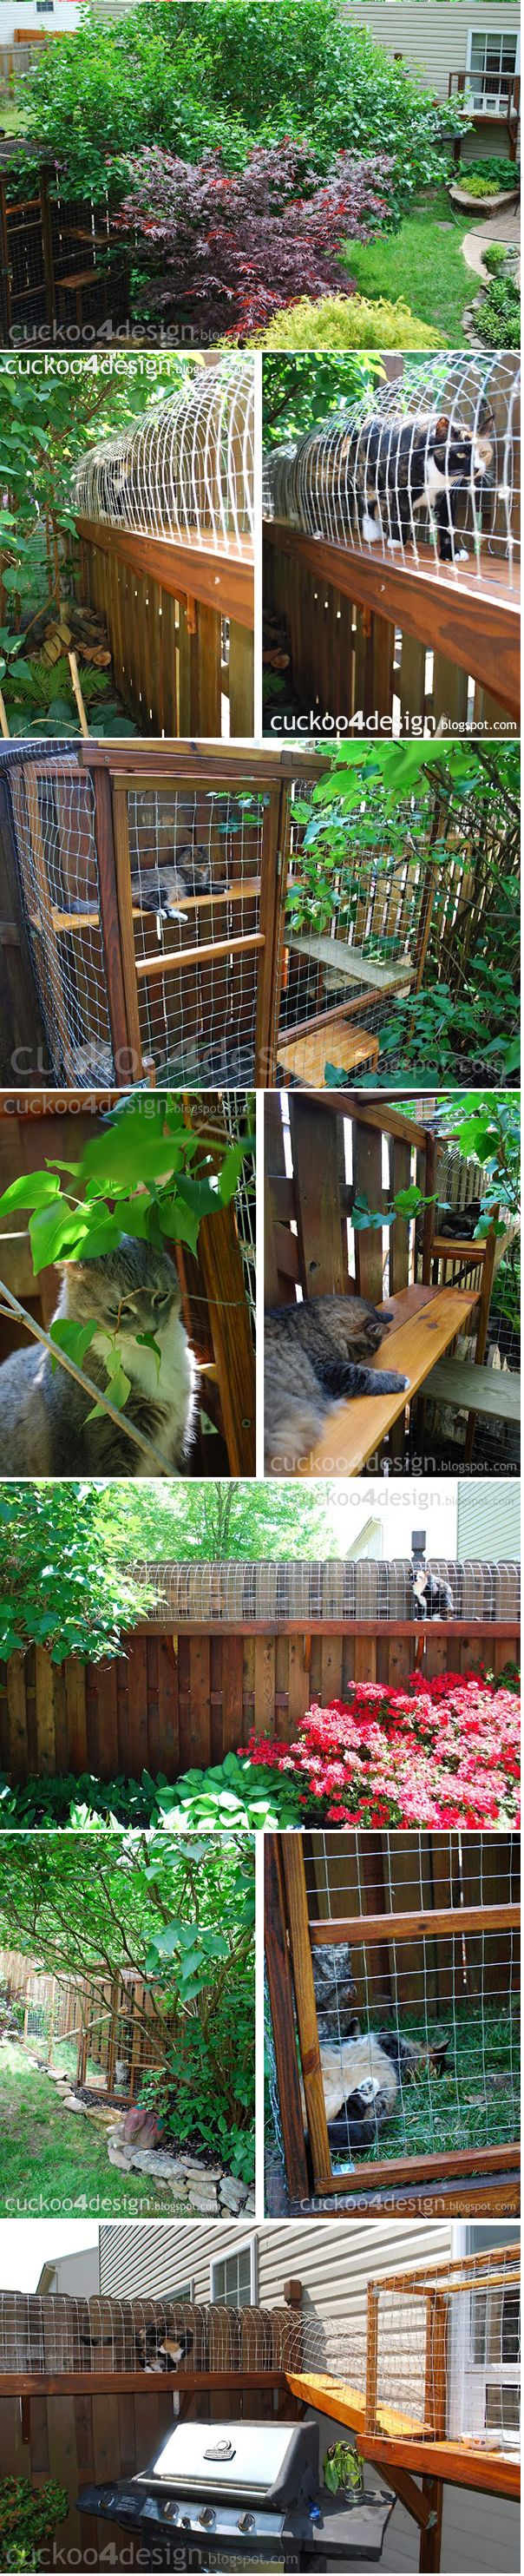 CAT ENCLOSURE.  DIY project to keep your cats safe. Definitely an interesting idea.